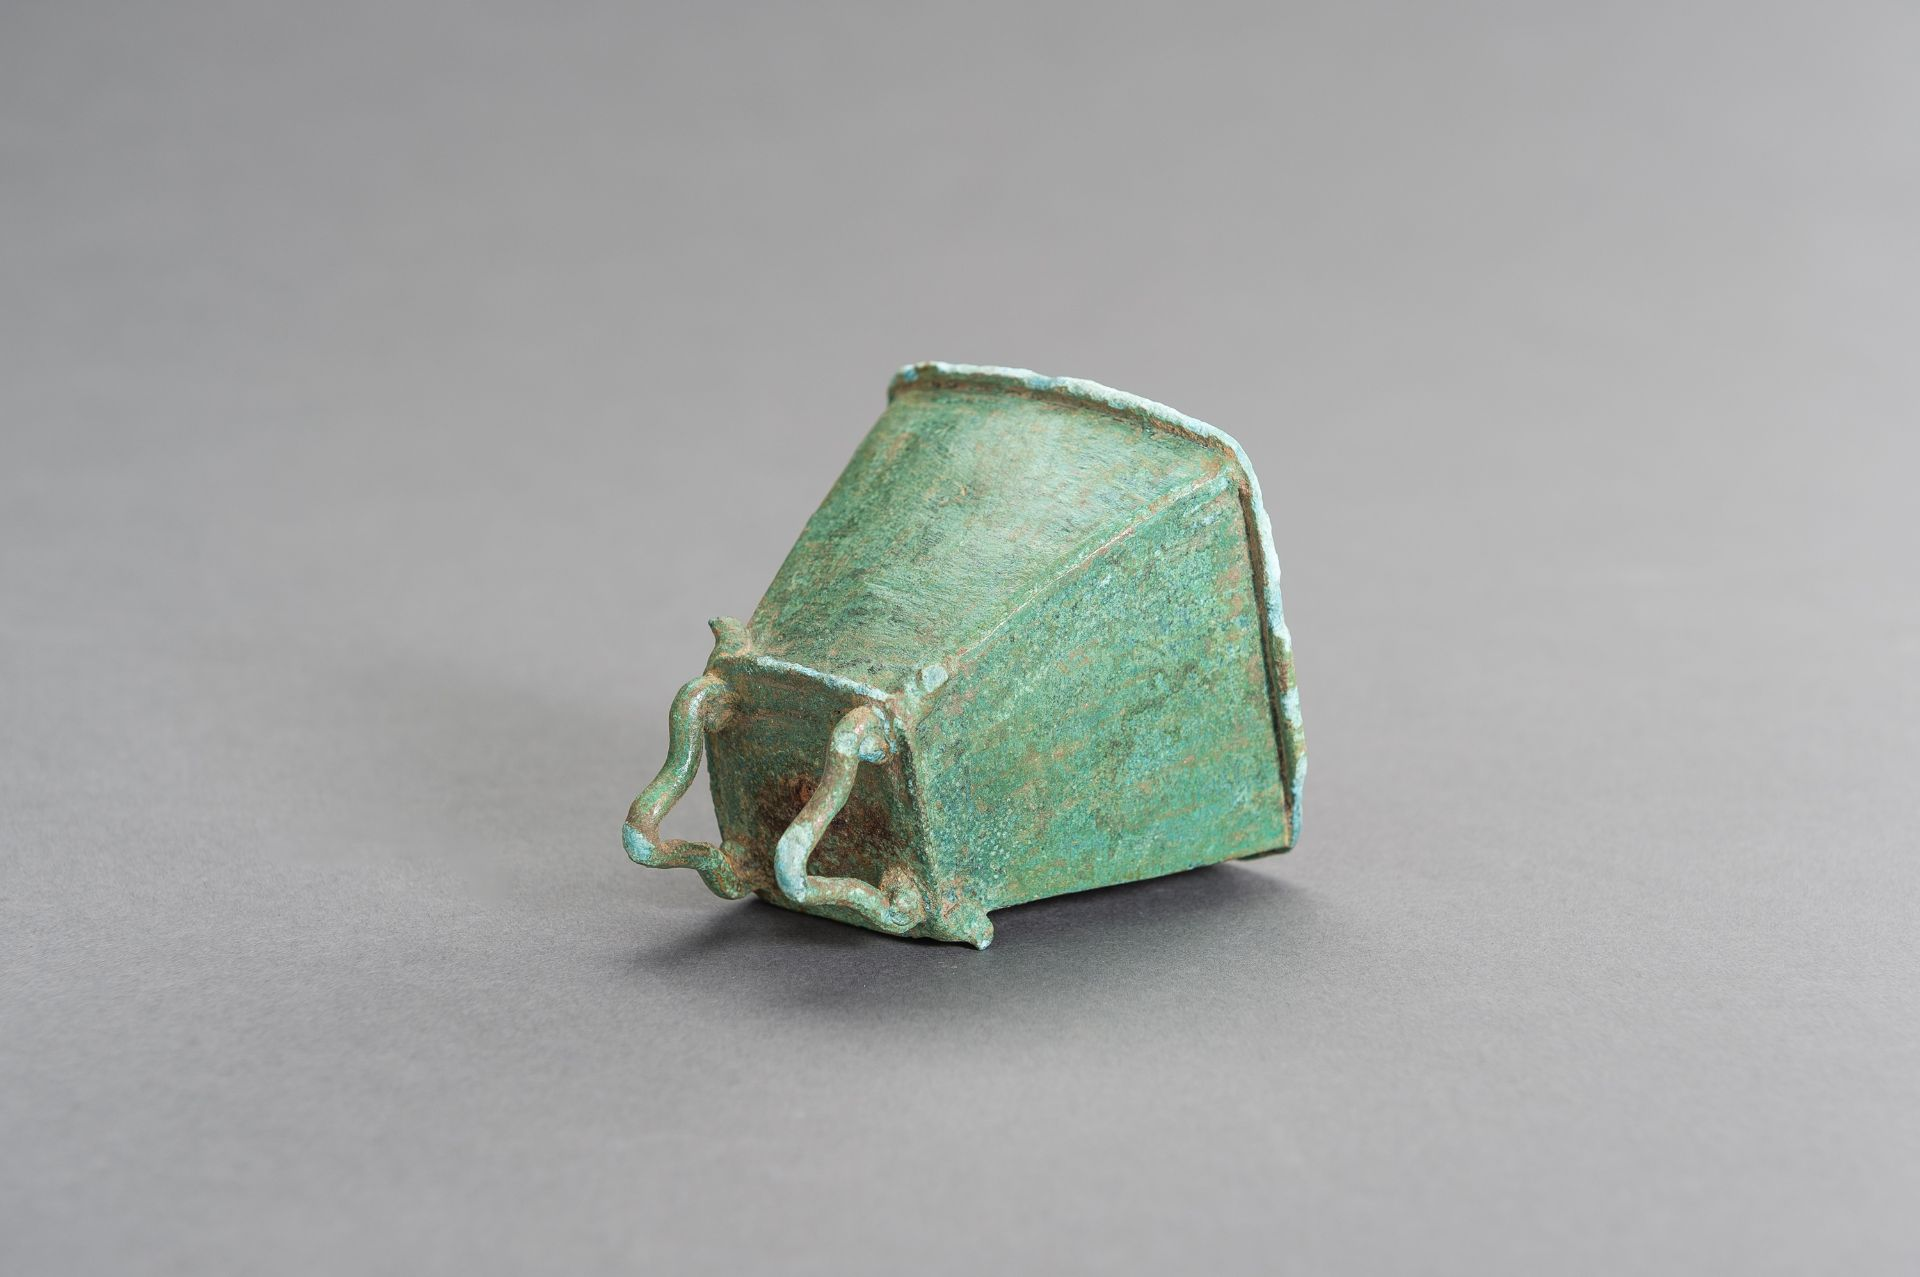 A SMALL BRONZE BELL - Image 5 of 9